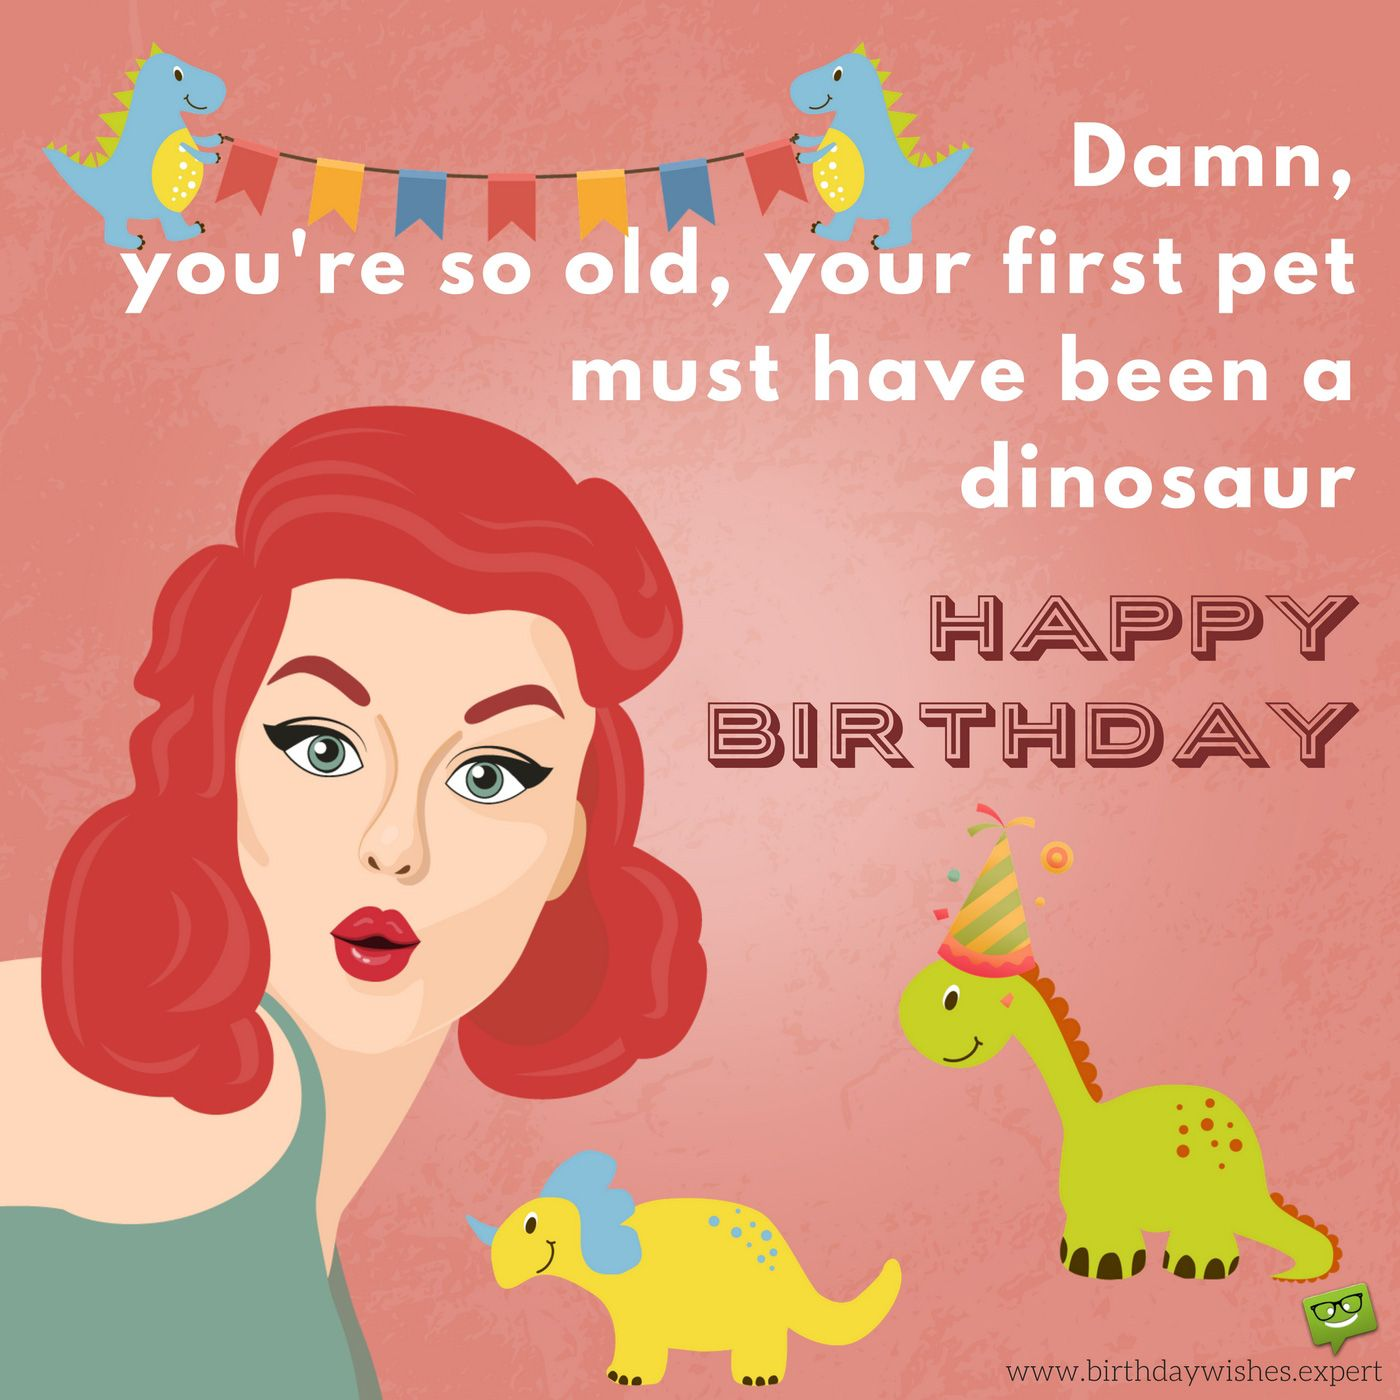 91a5ee1f9ca9fa2e05db686be5f25a02 you're so old, your first pet must have been a dinosaur birthday,You Re So Old Meme